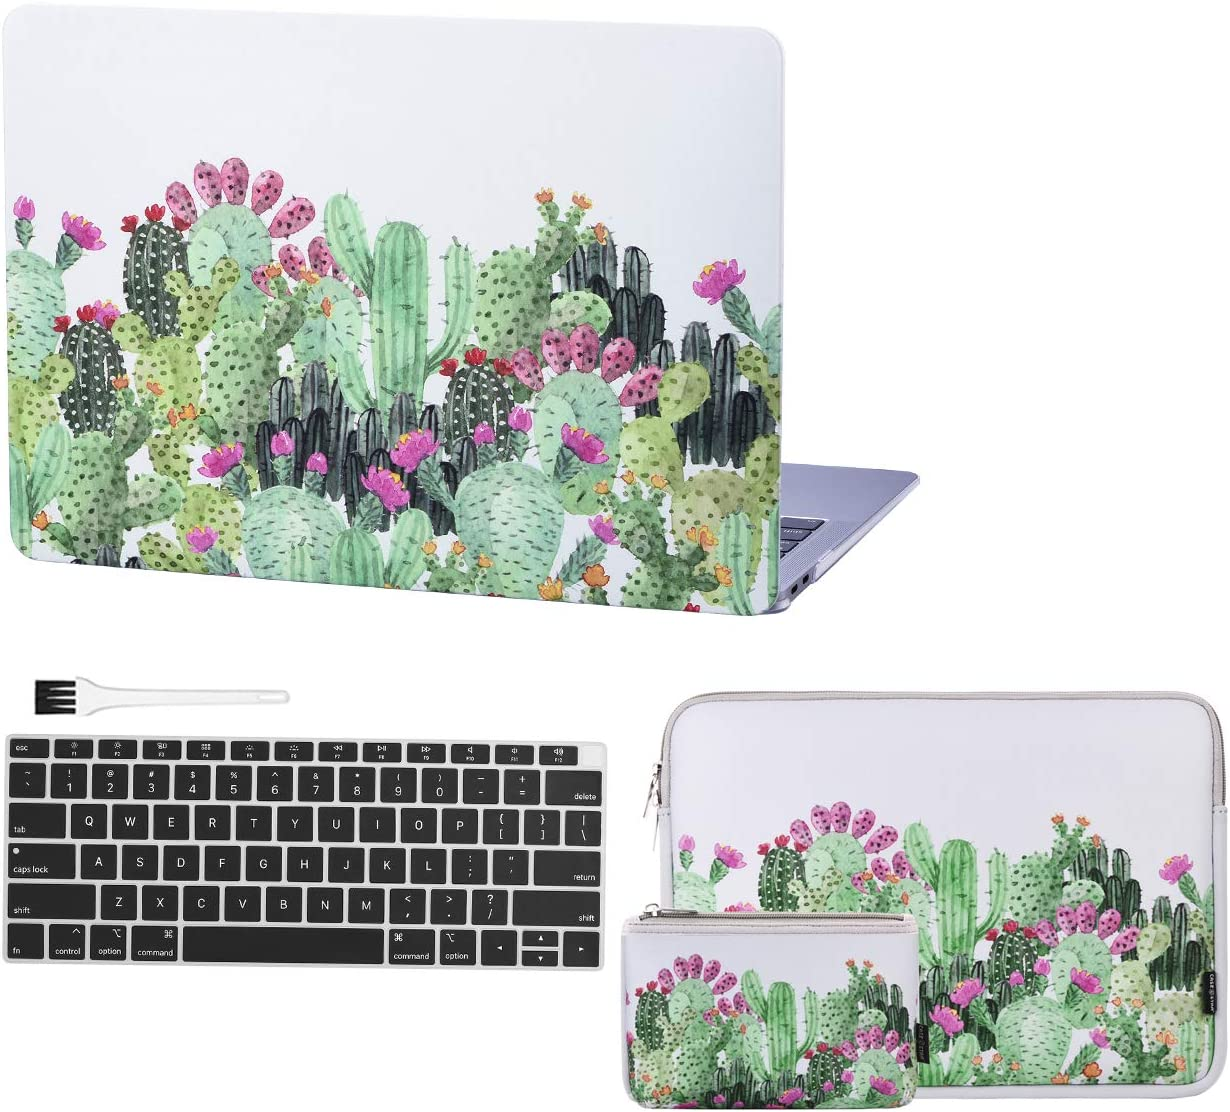 Case Star Laptop case for New Macbook Inch Minneapolis Mall Air A1932 A2179 13 20 Industry No. 1